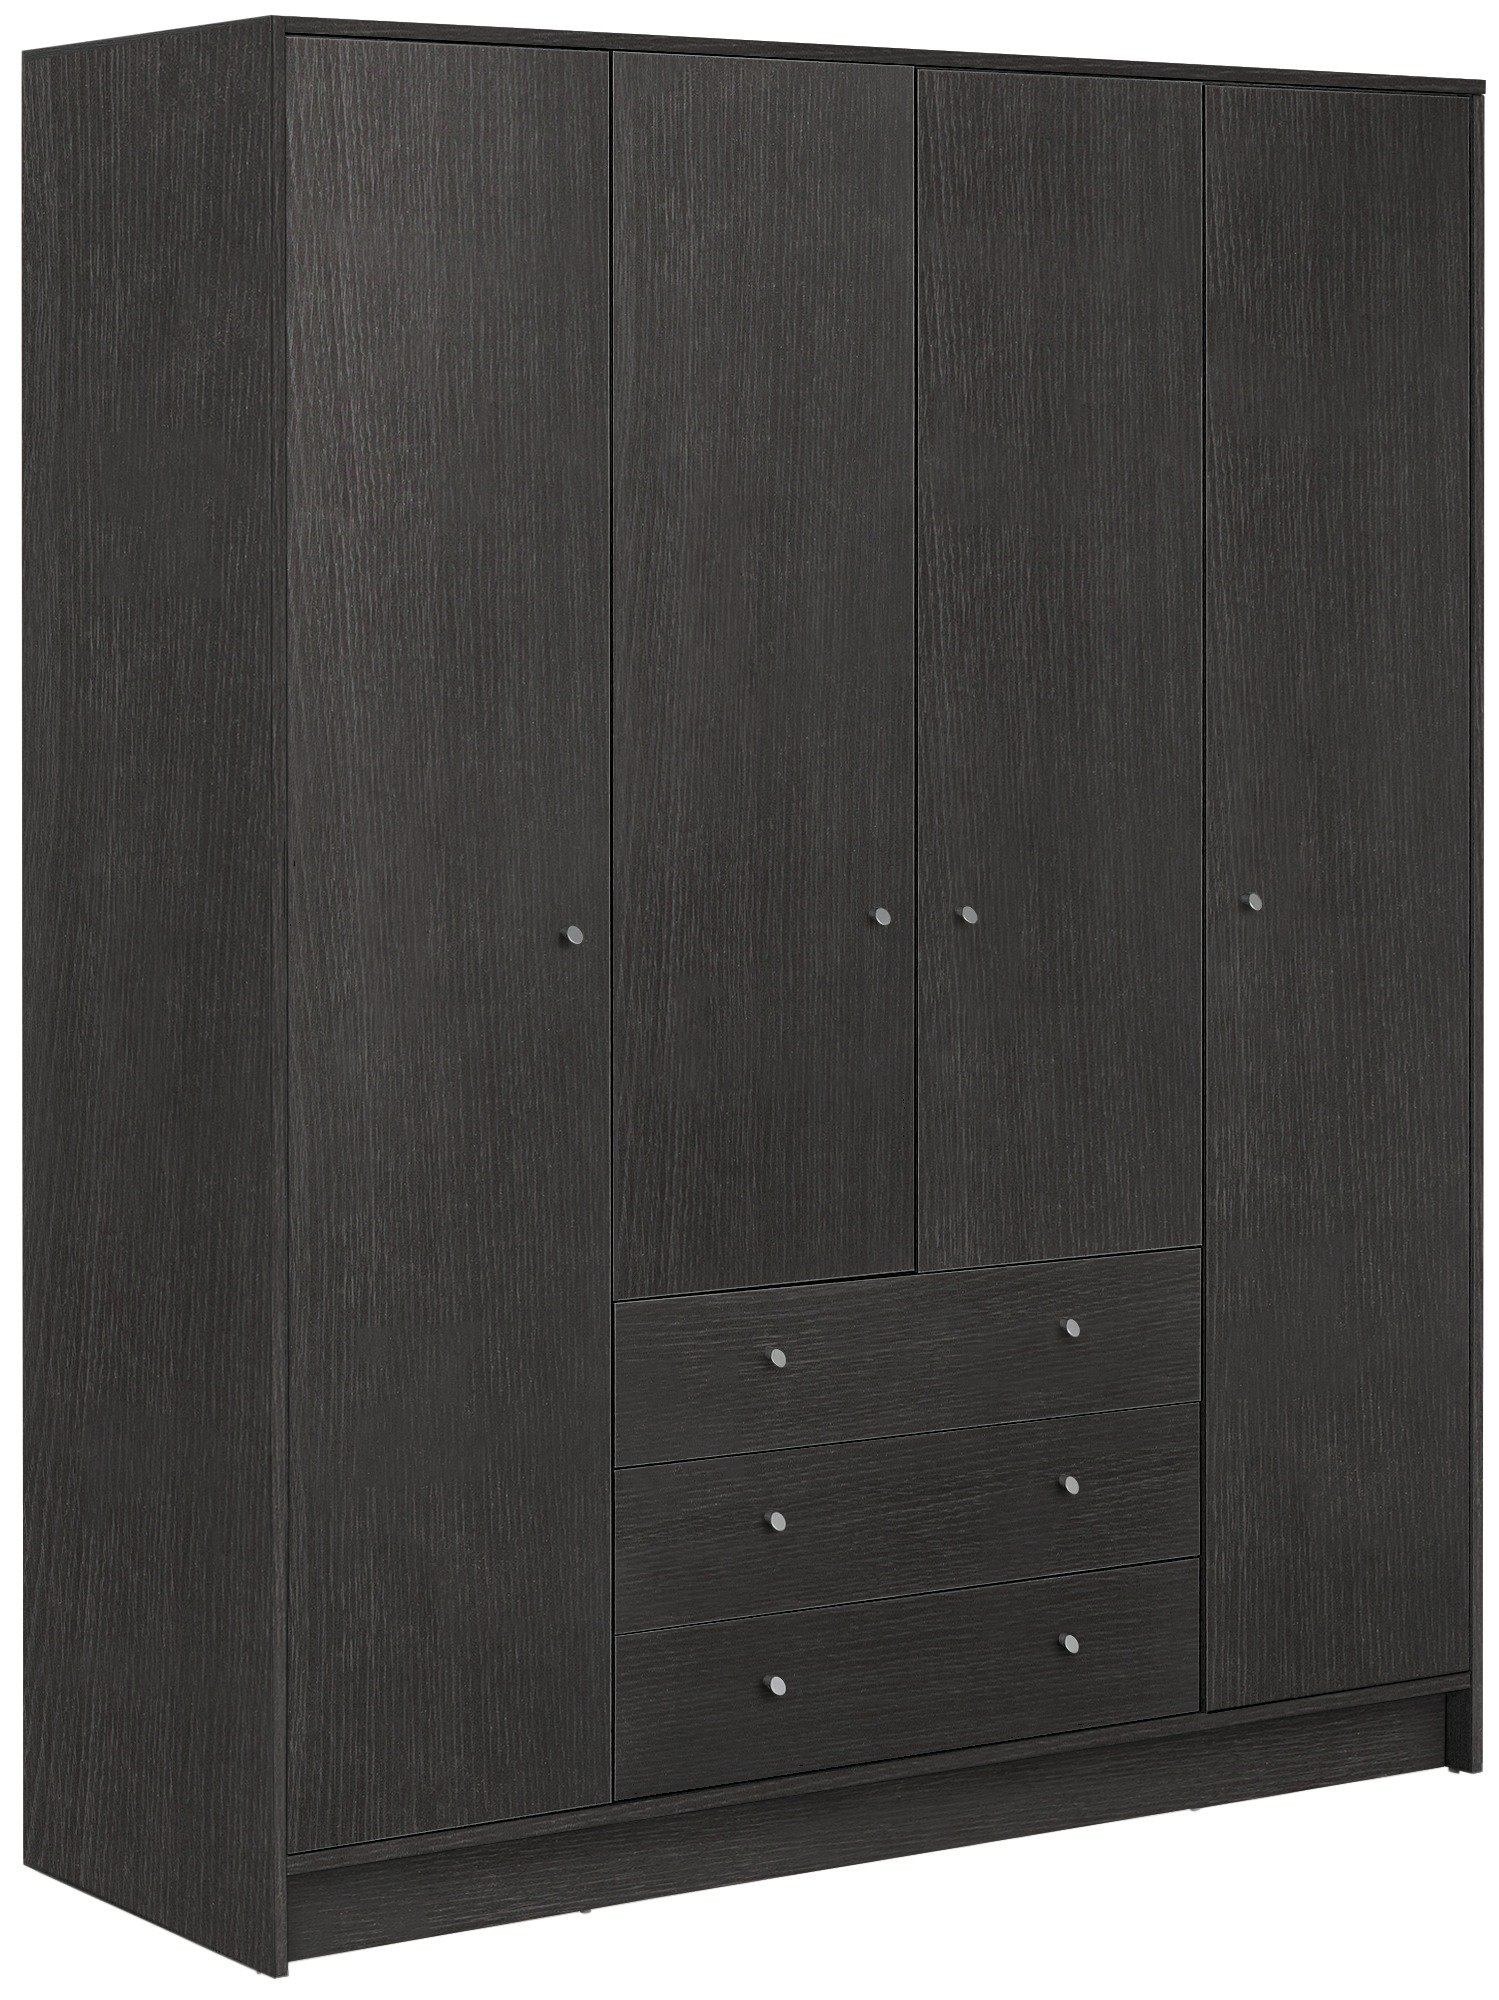 Argos Home Malibu 4 Dr 3 Drawer Wardrobe - Black Oak Effect